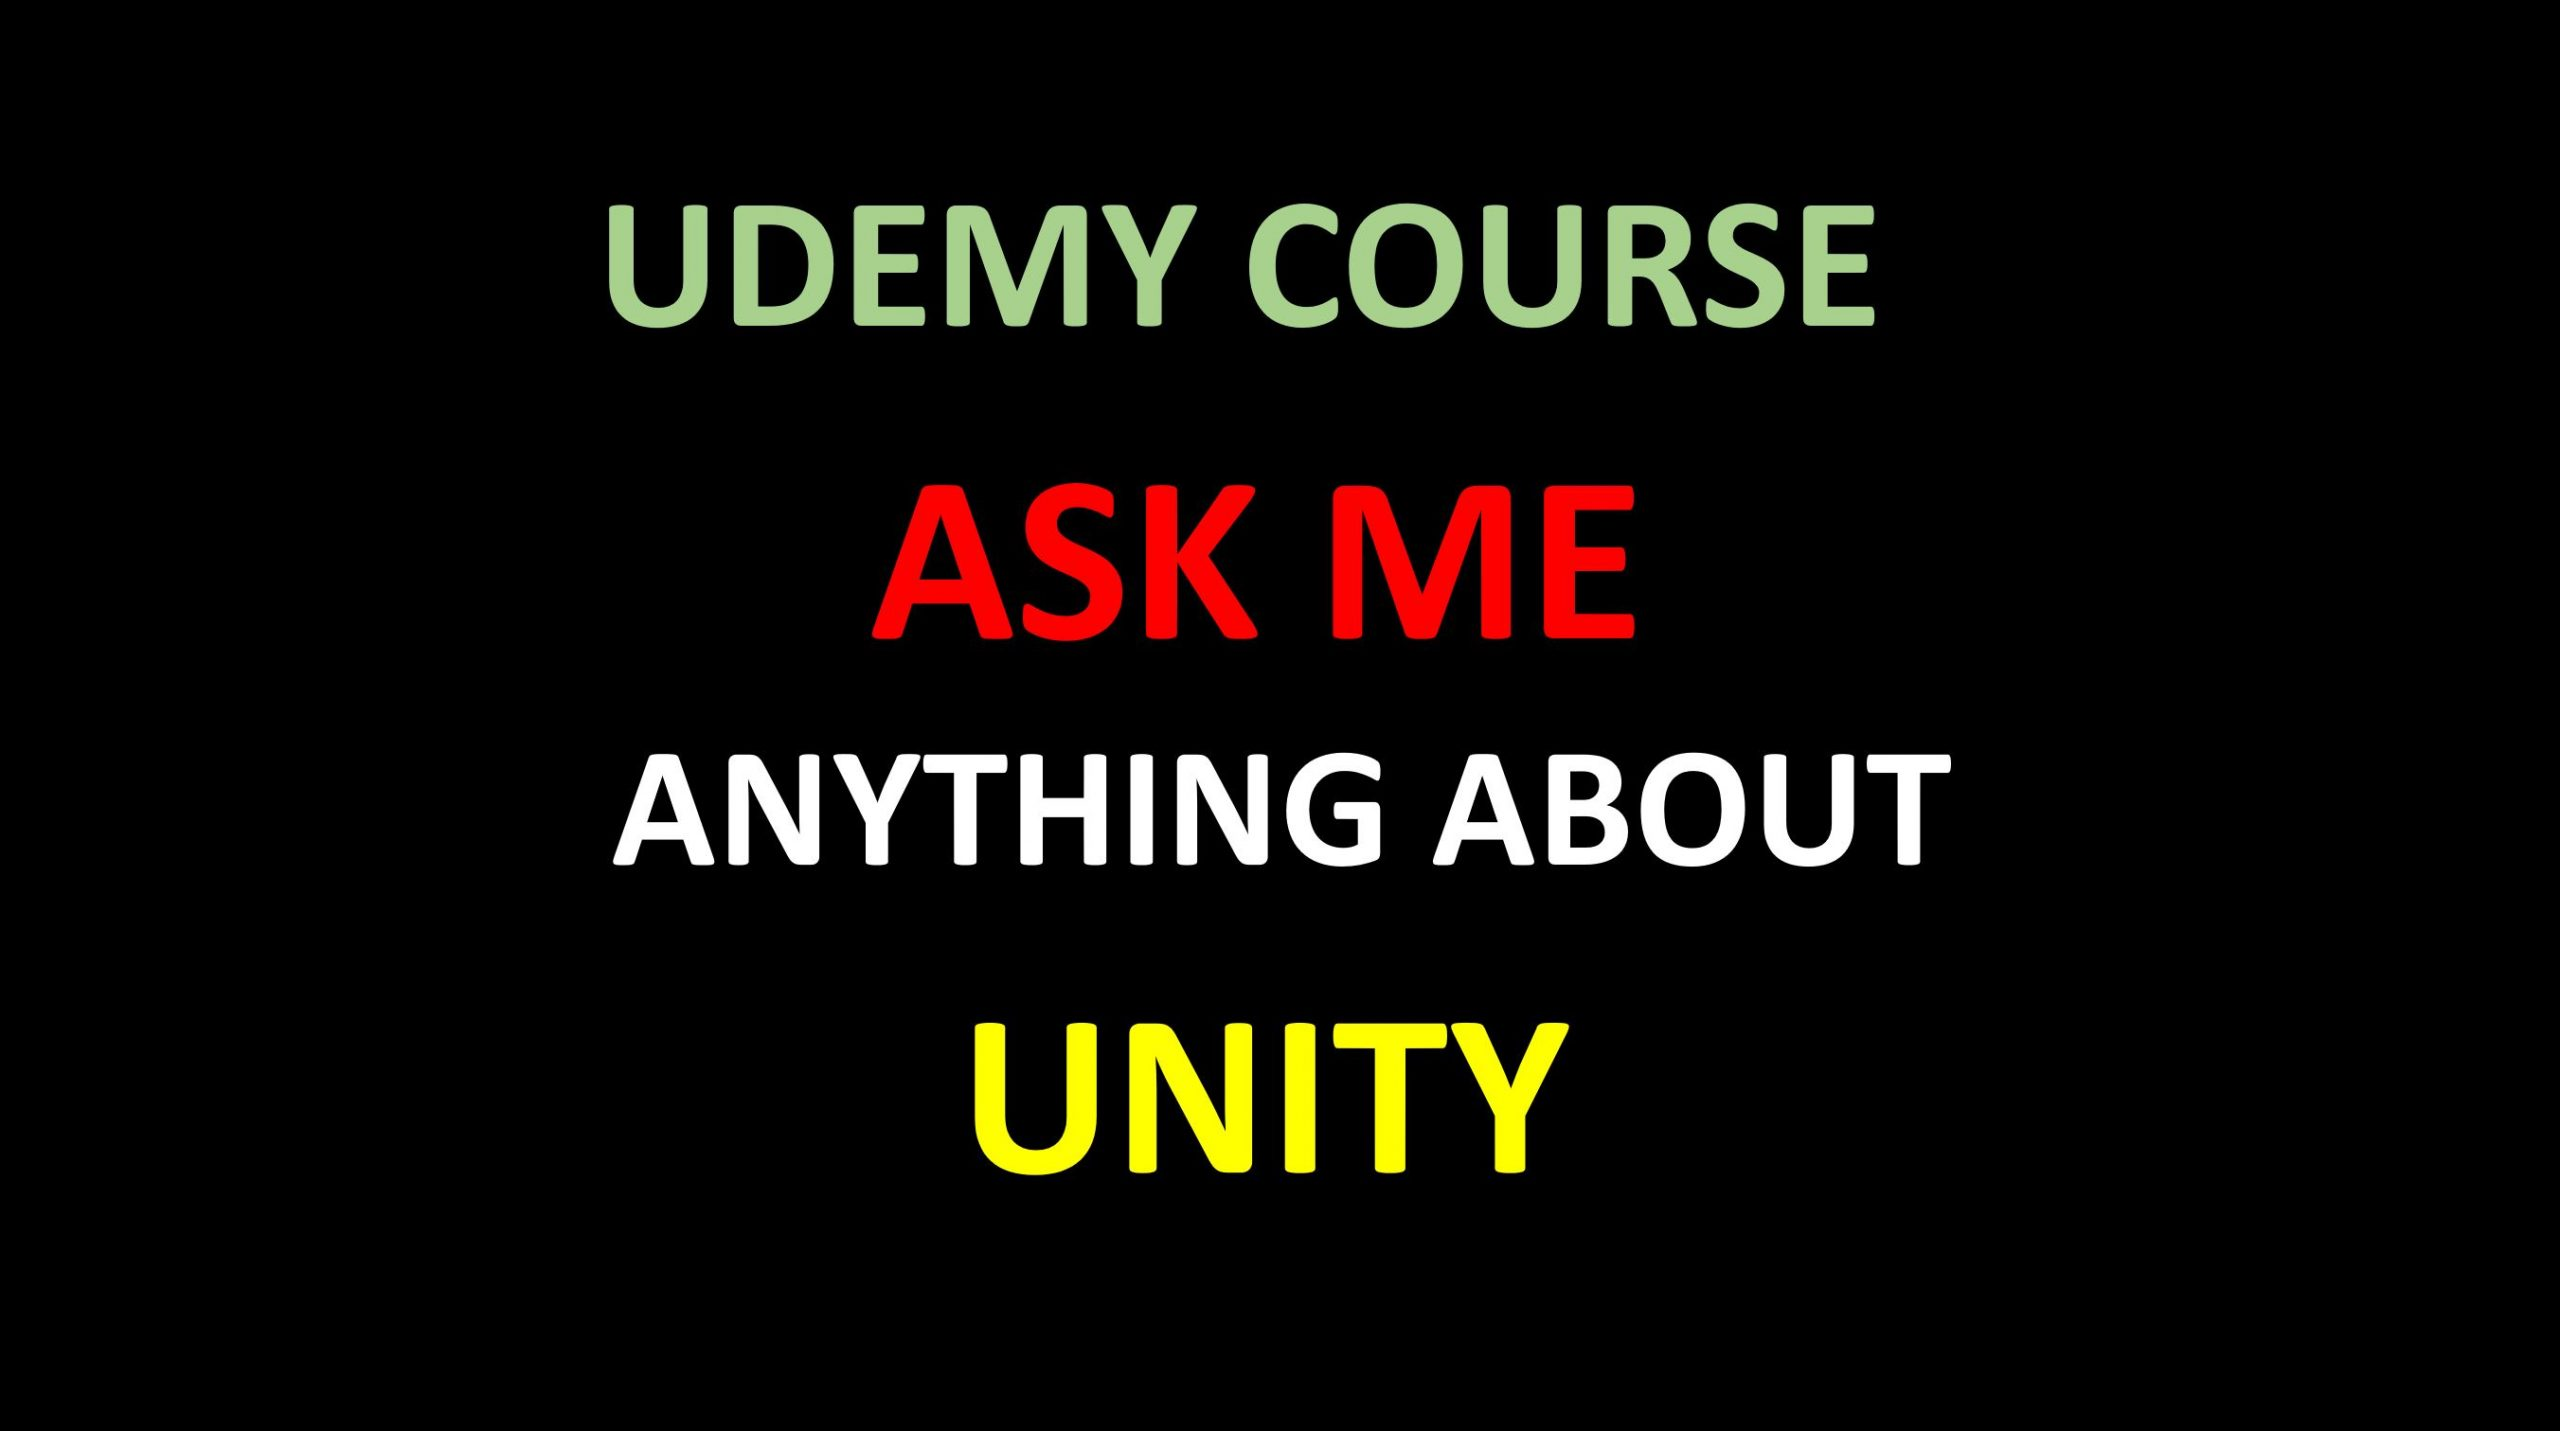 Ask Me anything about unity